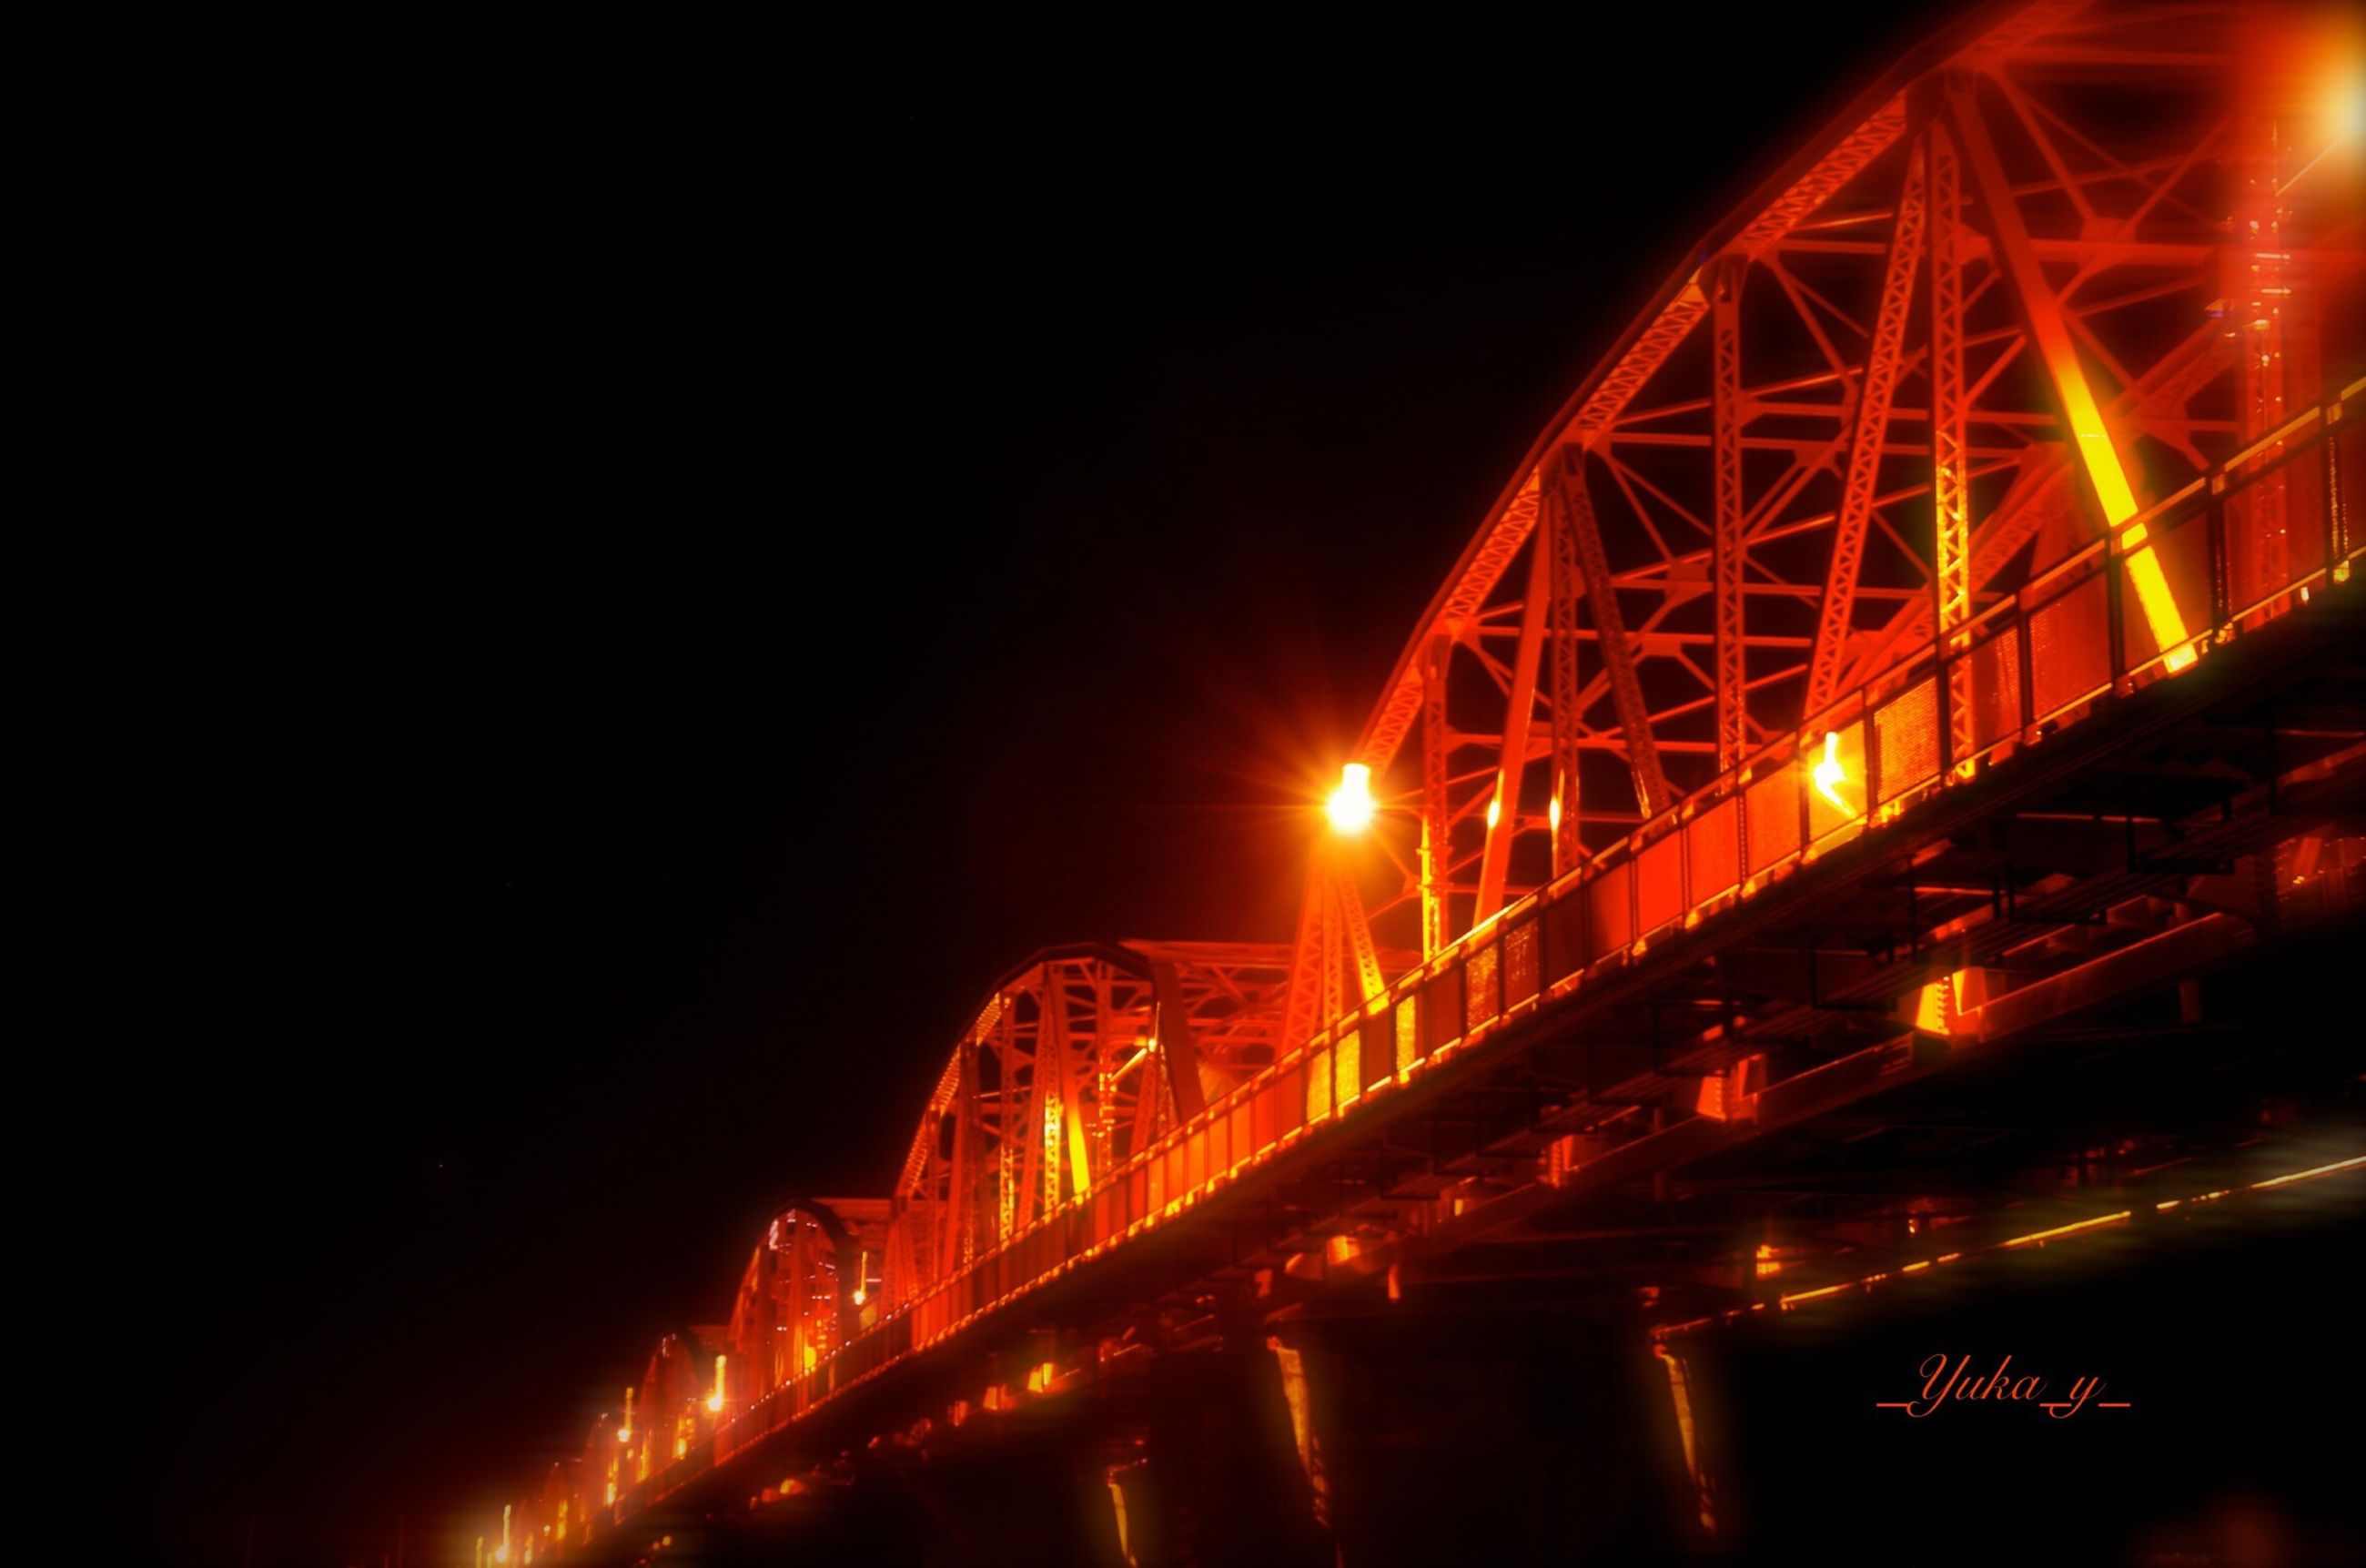 night, illuminated, built structure, architecture, low angle view, bridge - man made structure, connection, clear sky, copy space, engineering, transportation, city, lighting equipment, sky, light - natural phenomenon, building exterior, outdoors, street light, ferris wheel, travel destinations